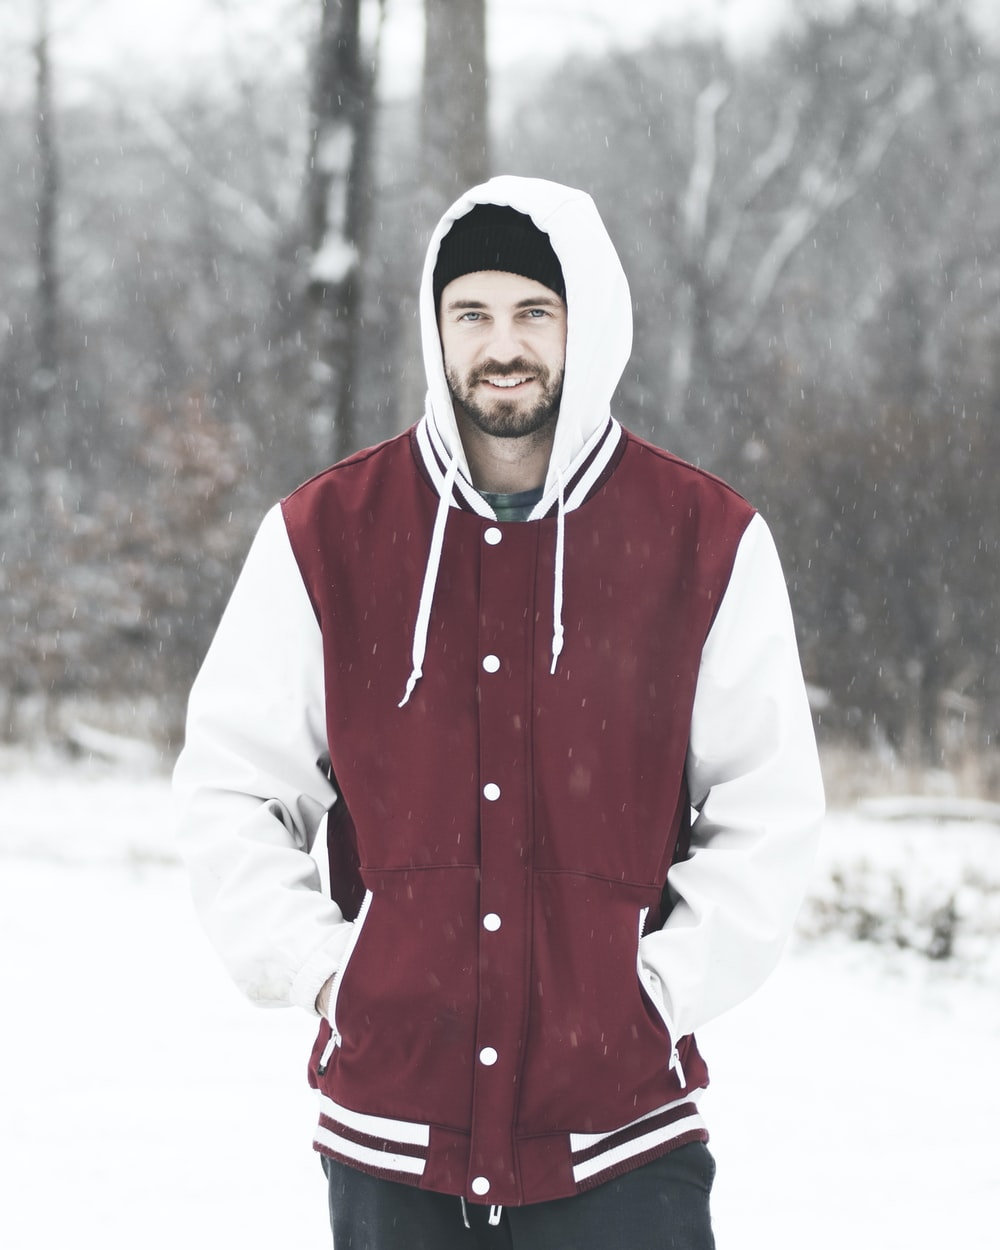 man wearing red and white jacket